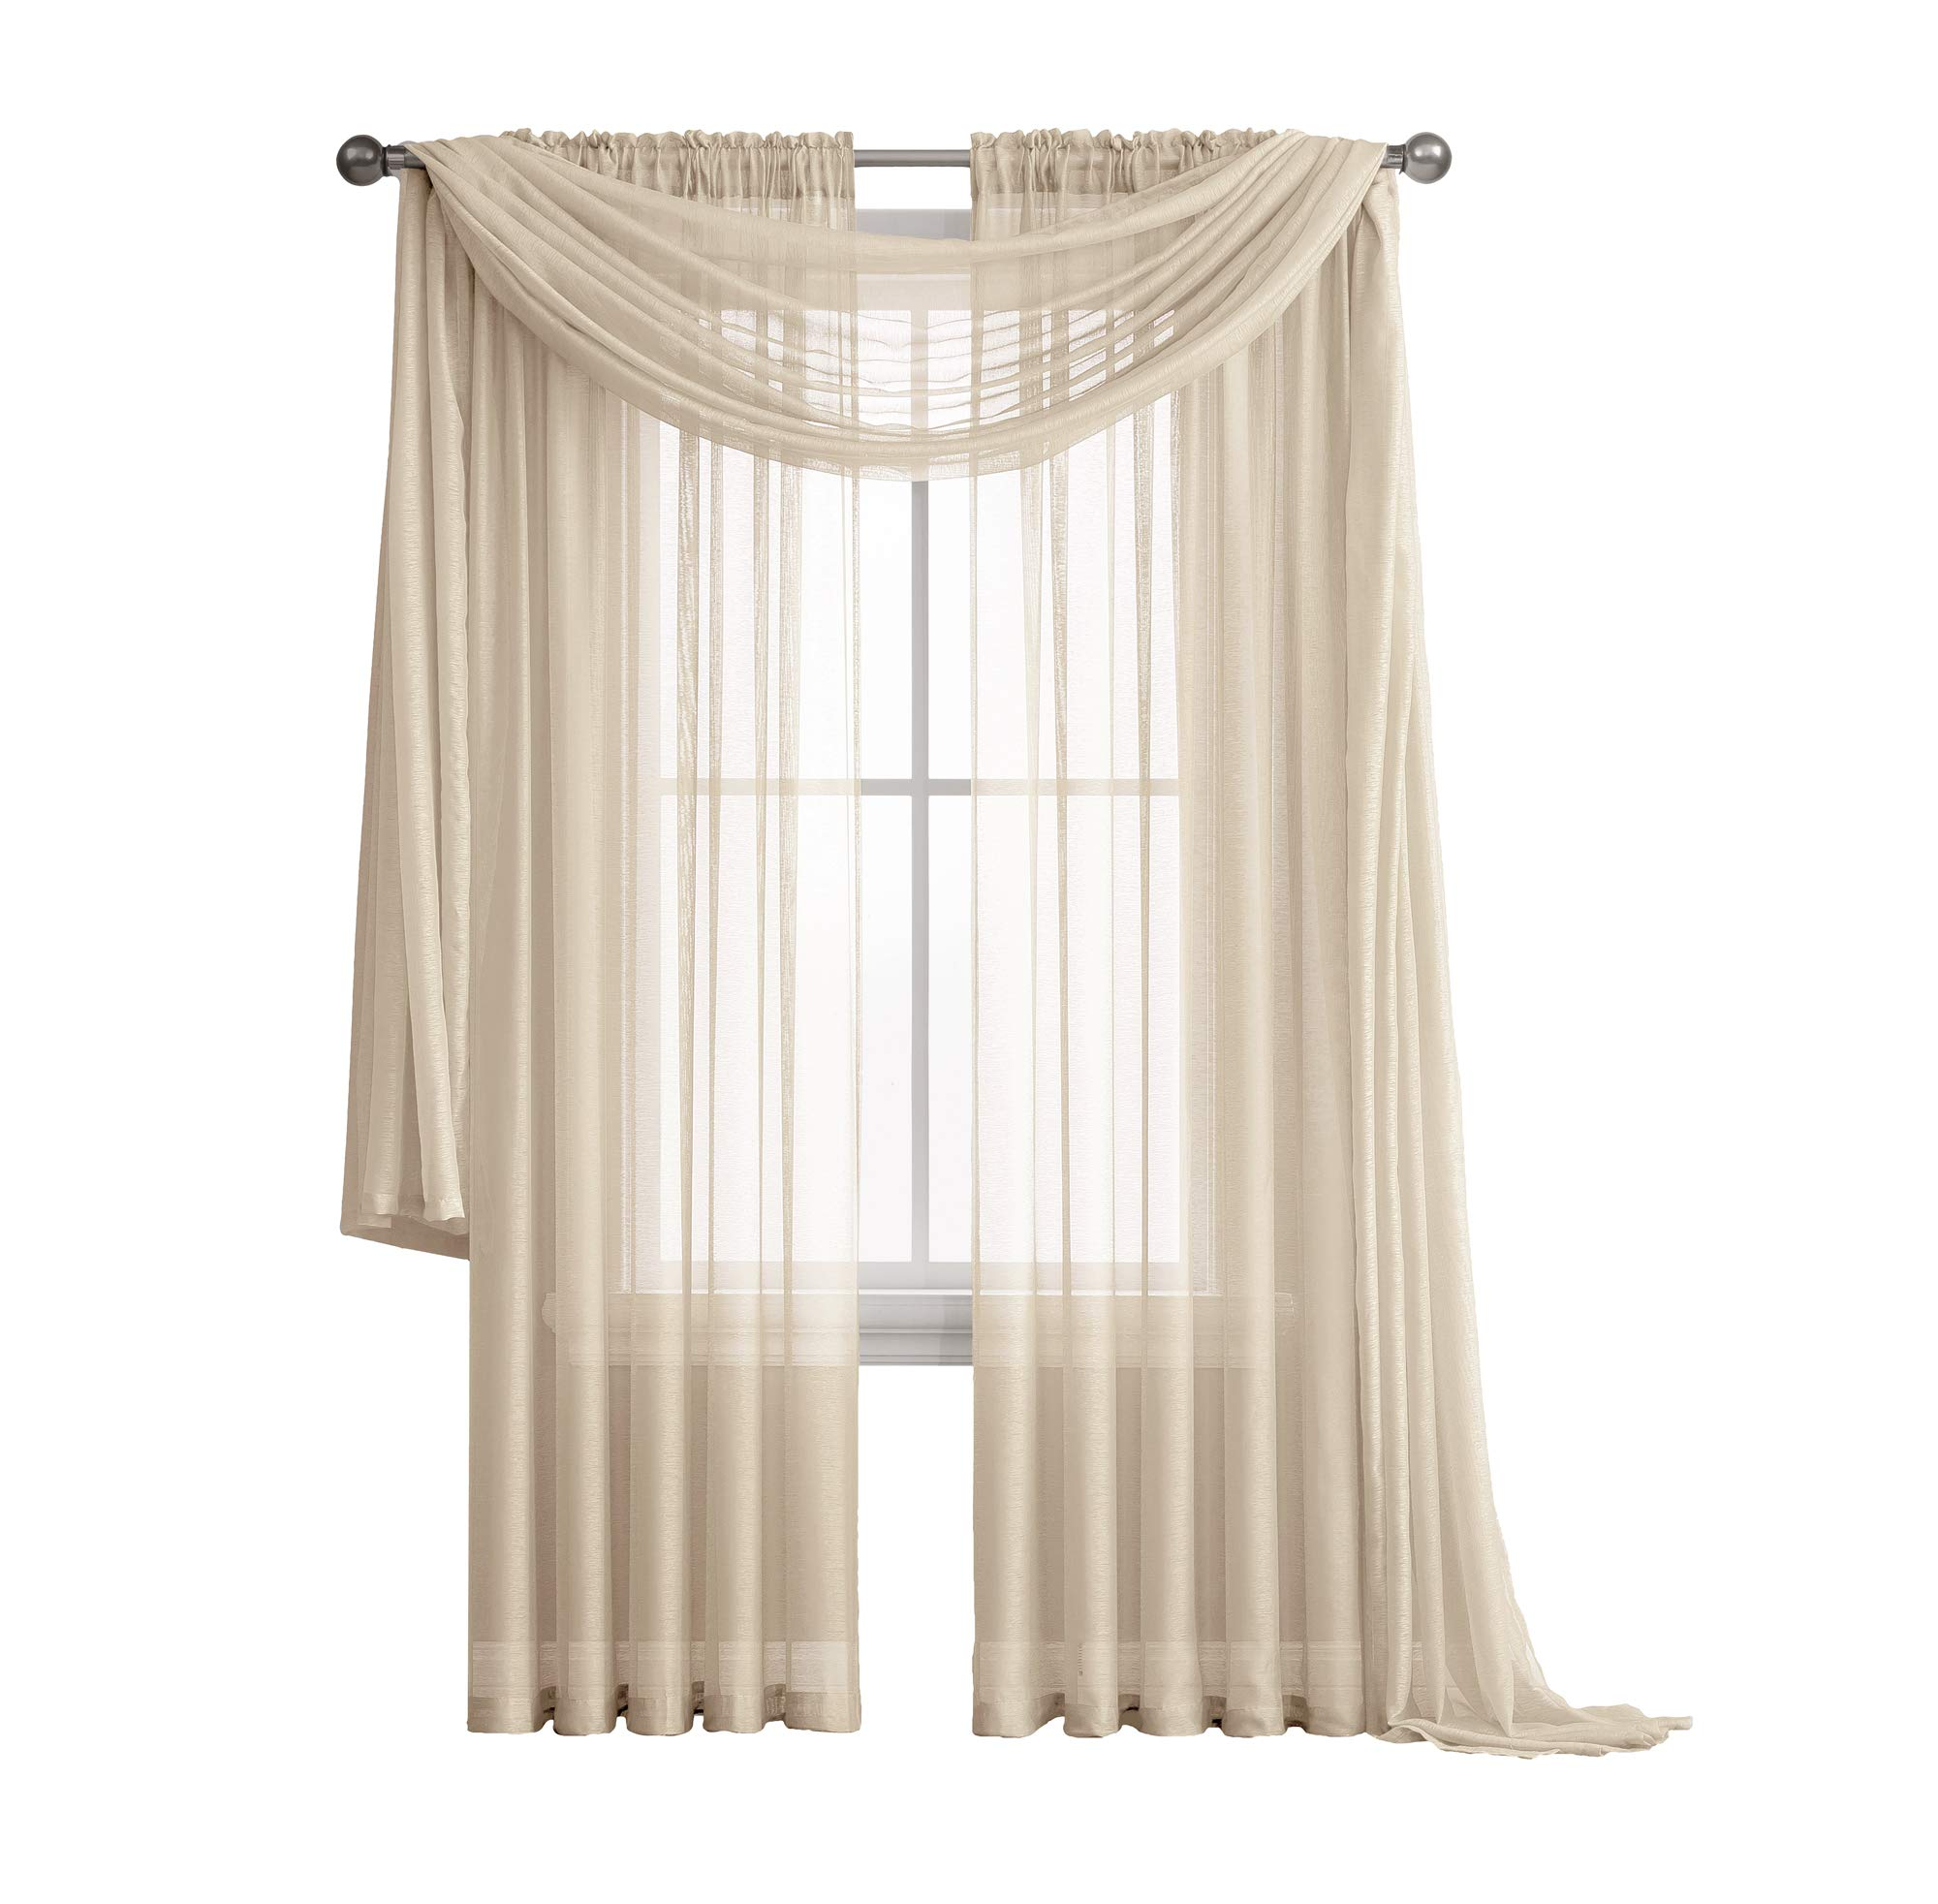 Jane - Rod Pocket Semi-Sheer Curtains - 2 Pieces - Total Size 108'' W x 84'' L - Natural Light Flow Material Durable - for Bedroom - Living Room - Kid's Room and Kitchen (Beige)